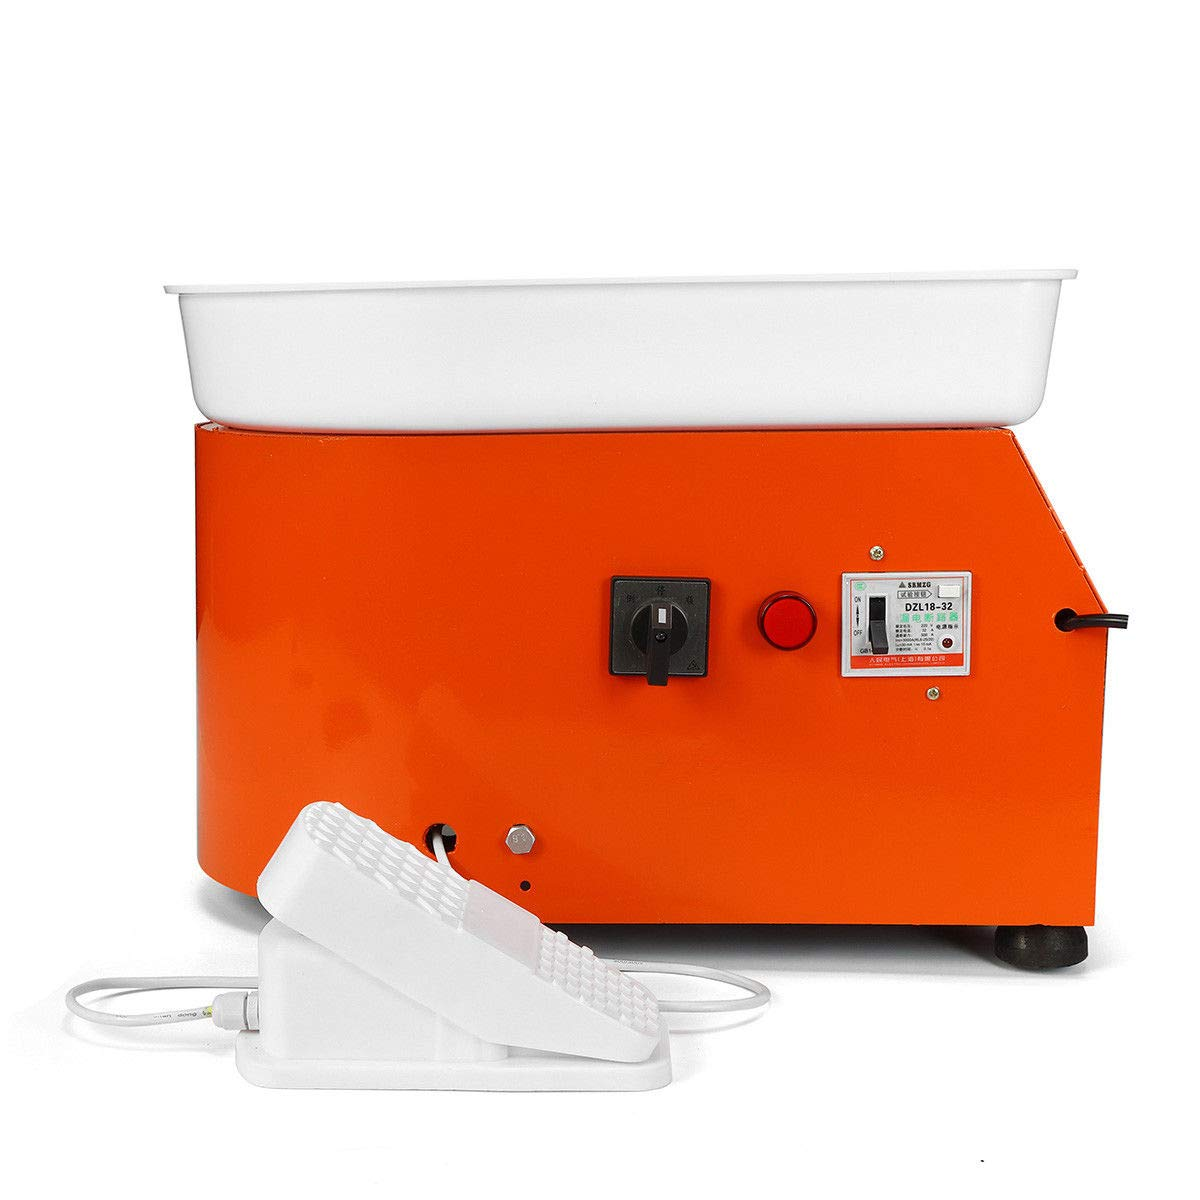 110V 350W Electric Pottery Wheel Machine with Foot Pedal Ceramic Work Clay Craft Electric Pottery Wheel DIY Clay Tool for Adults by RETERMIT (Image #2)